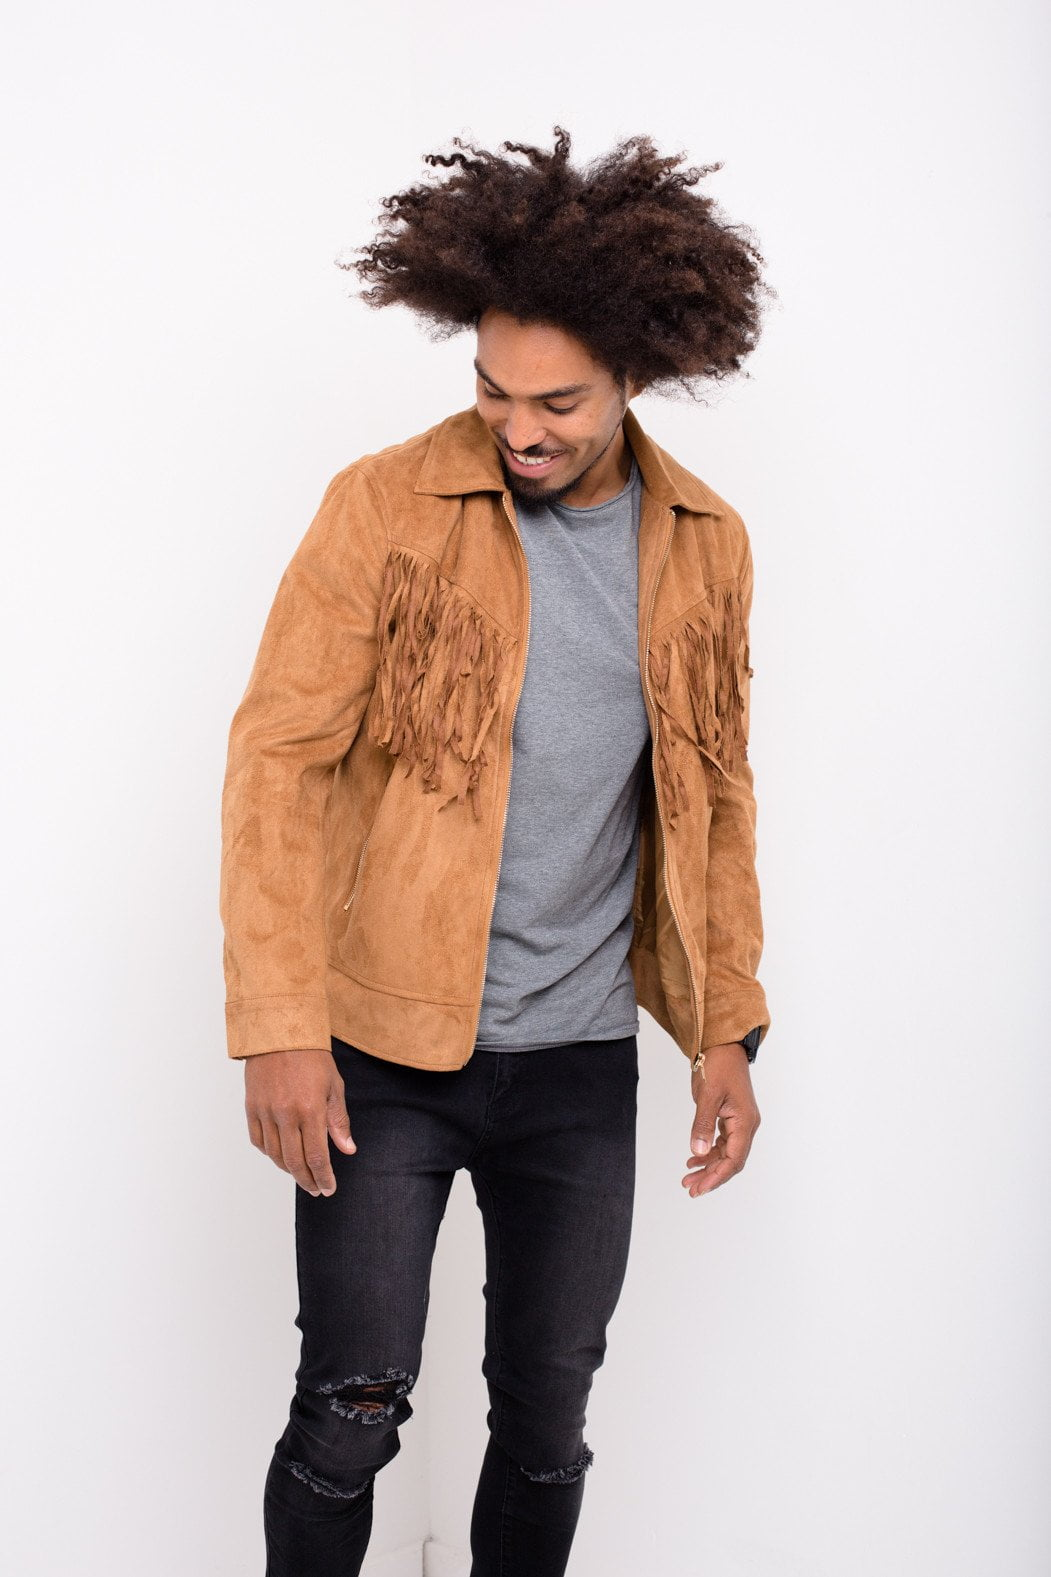 Liquor n Poker - Norton Suede Western Jacket with Tassells in Tan - Liquor N Poker  Liquor N Poker